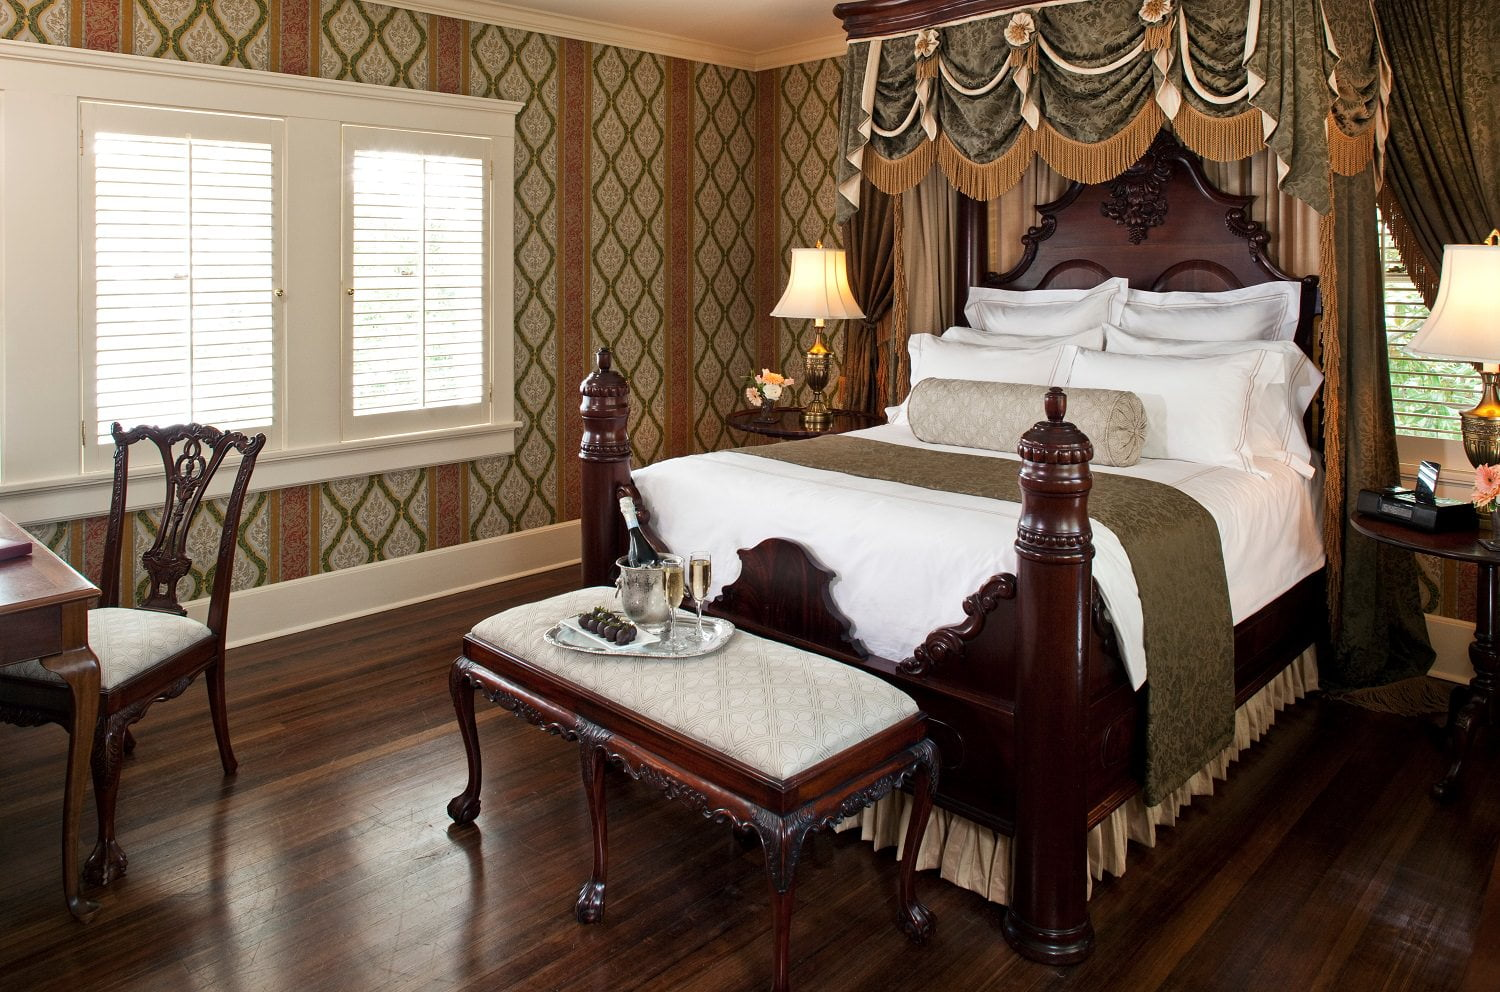 Bedroom Furniture Jackson Ms accommodations | hotels in jackson, ms with jacuzzi | fairview inn